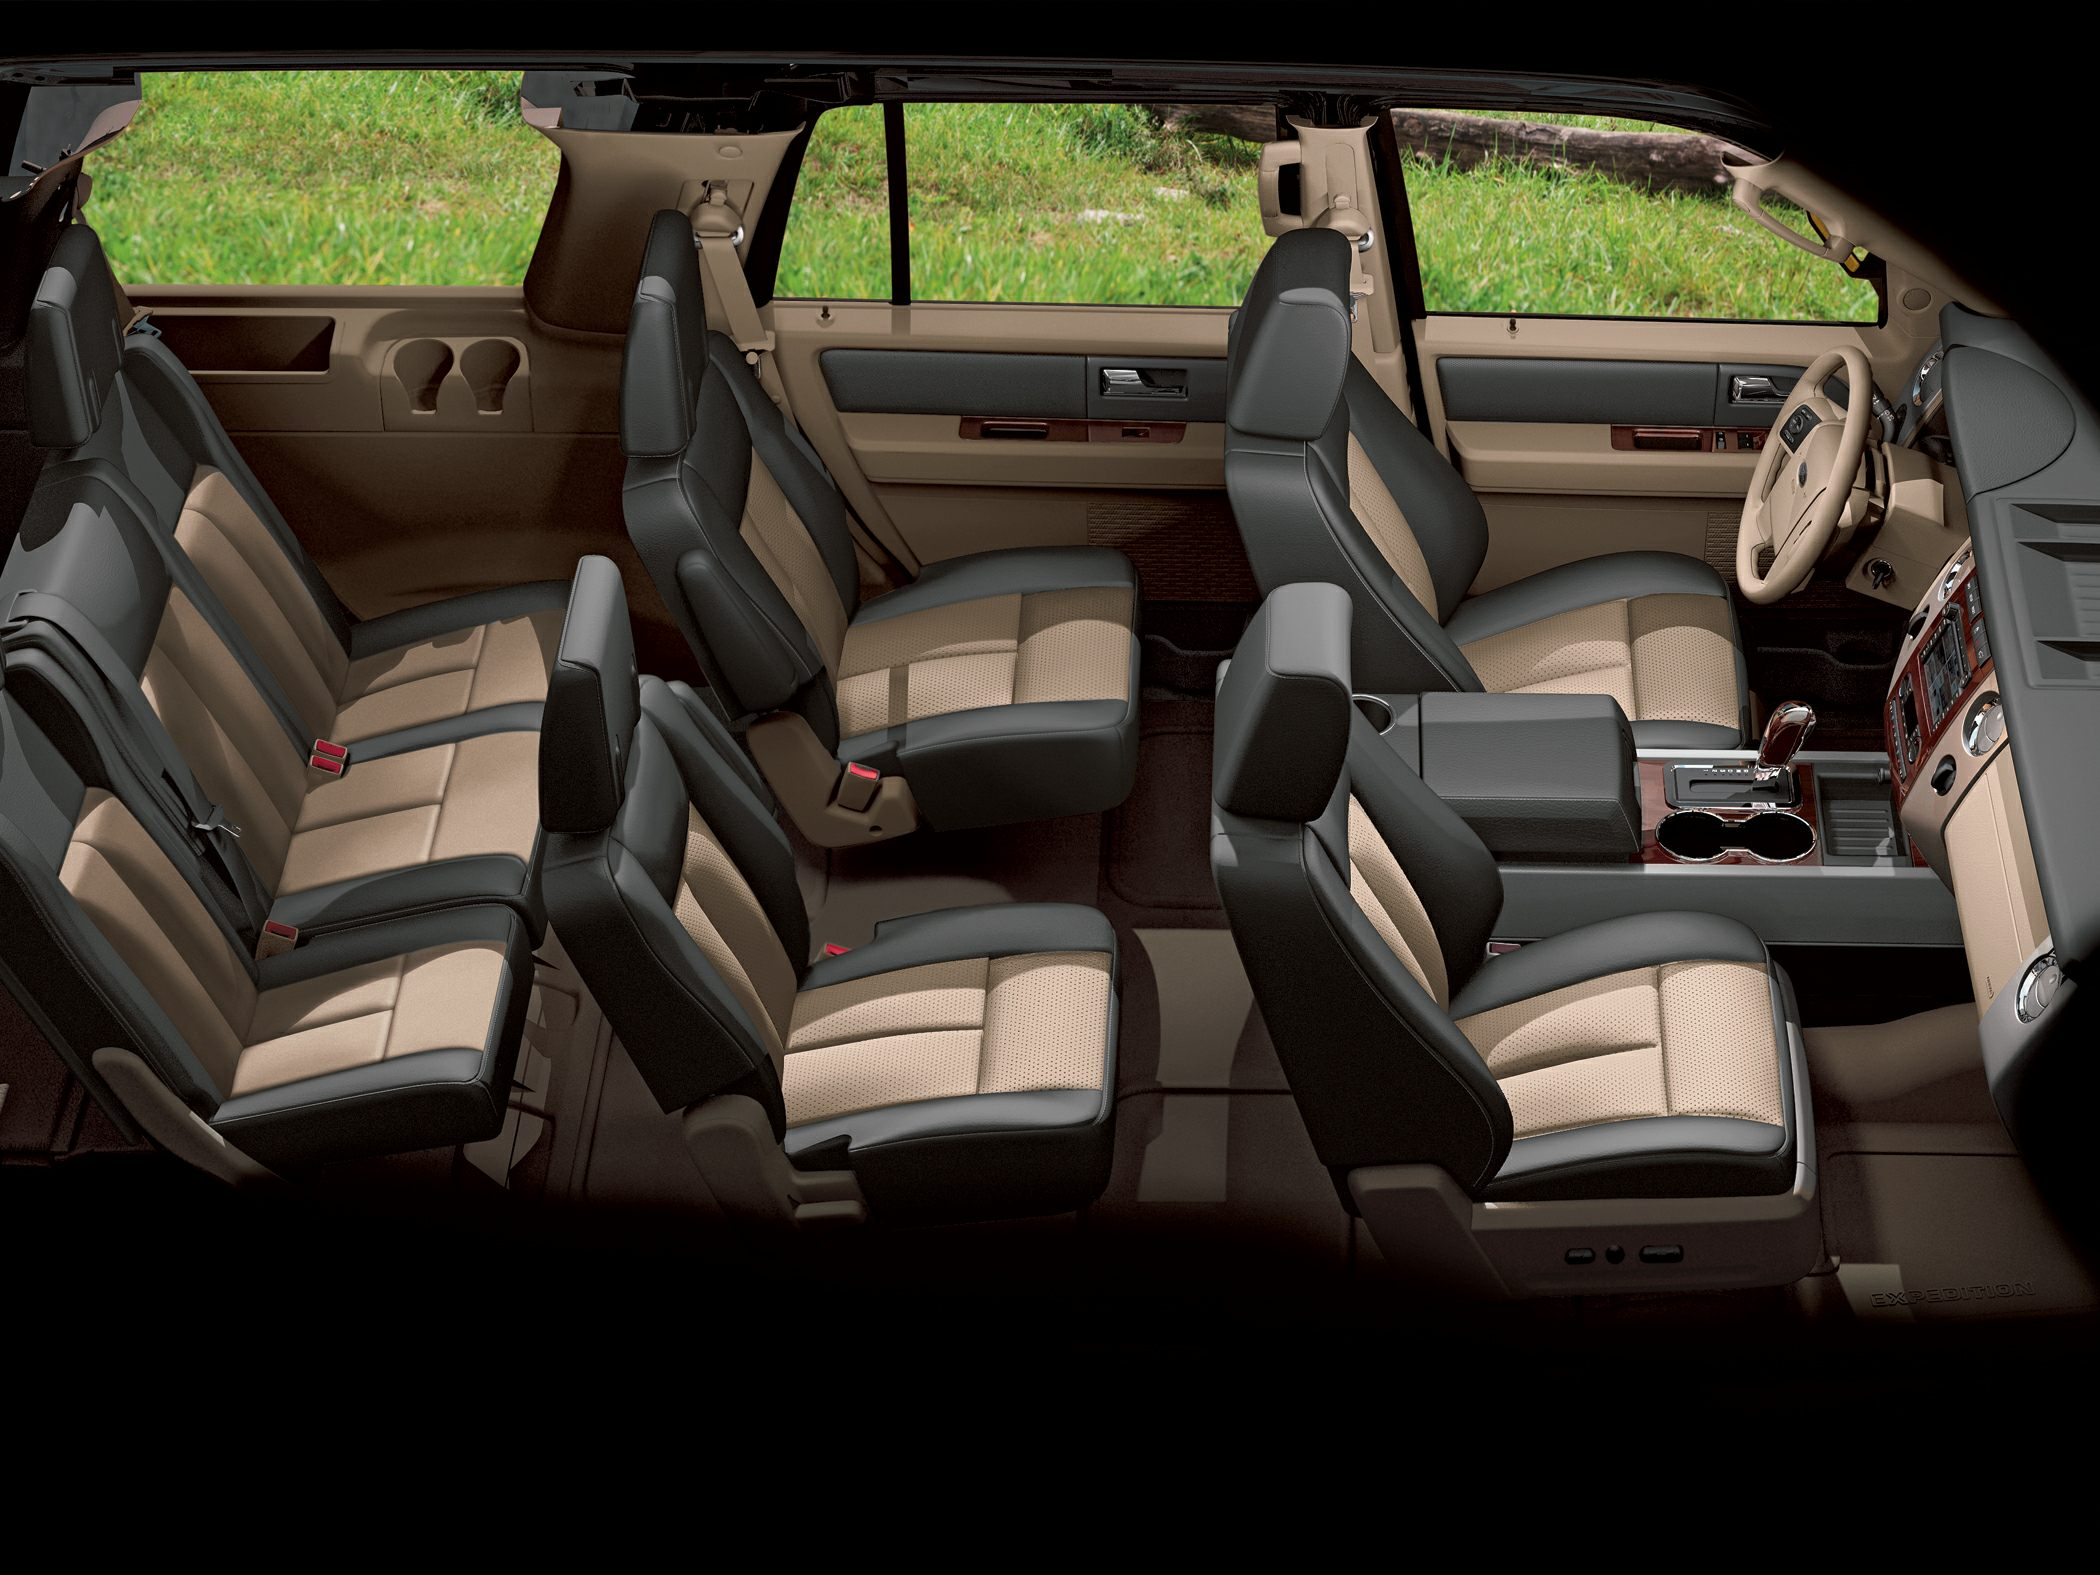 ... 3rd Row Seat additionally Jeep Grand Cherokee With 3rd Row Seating in